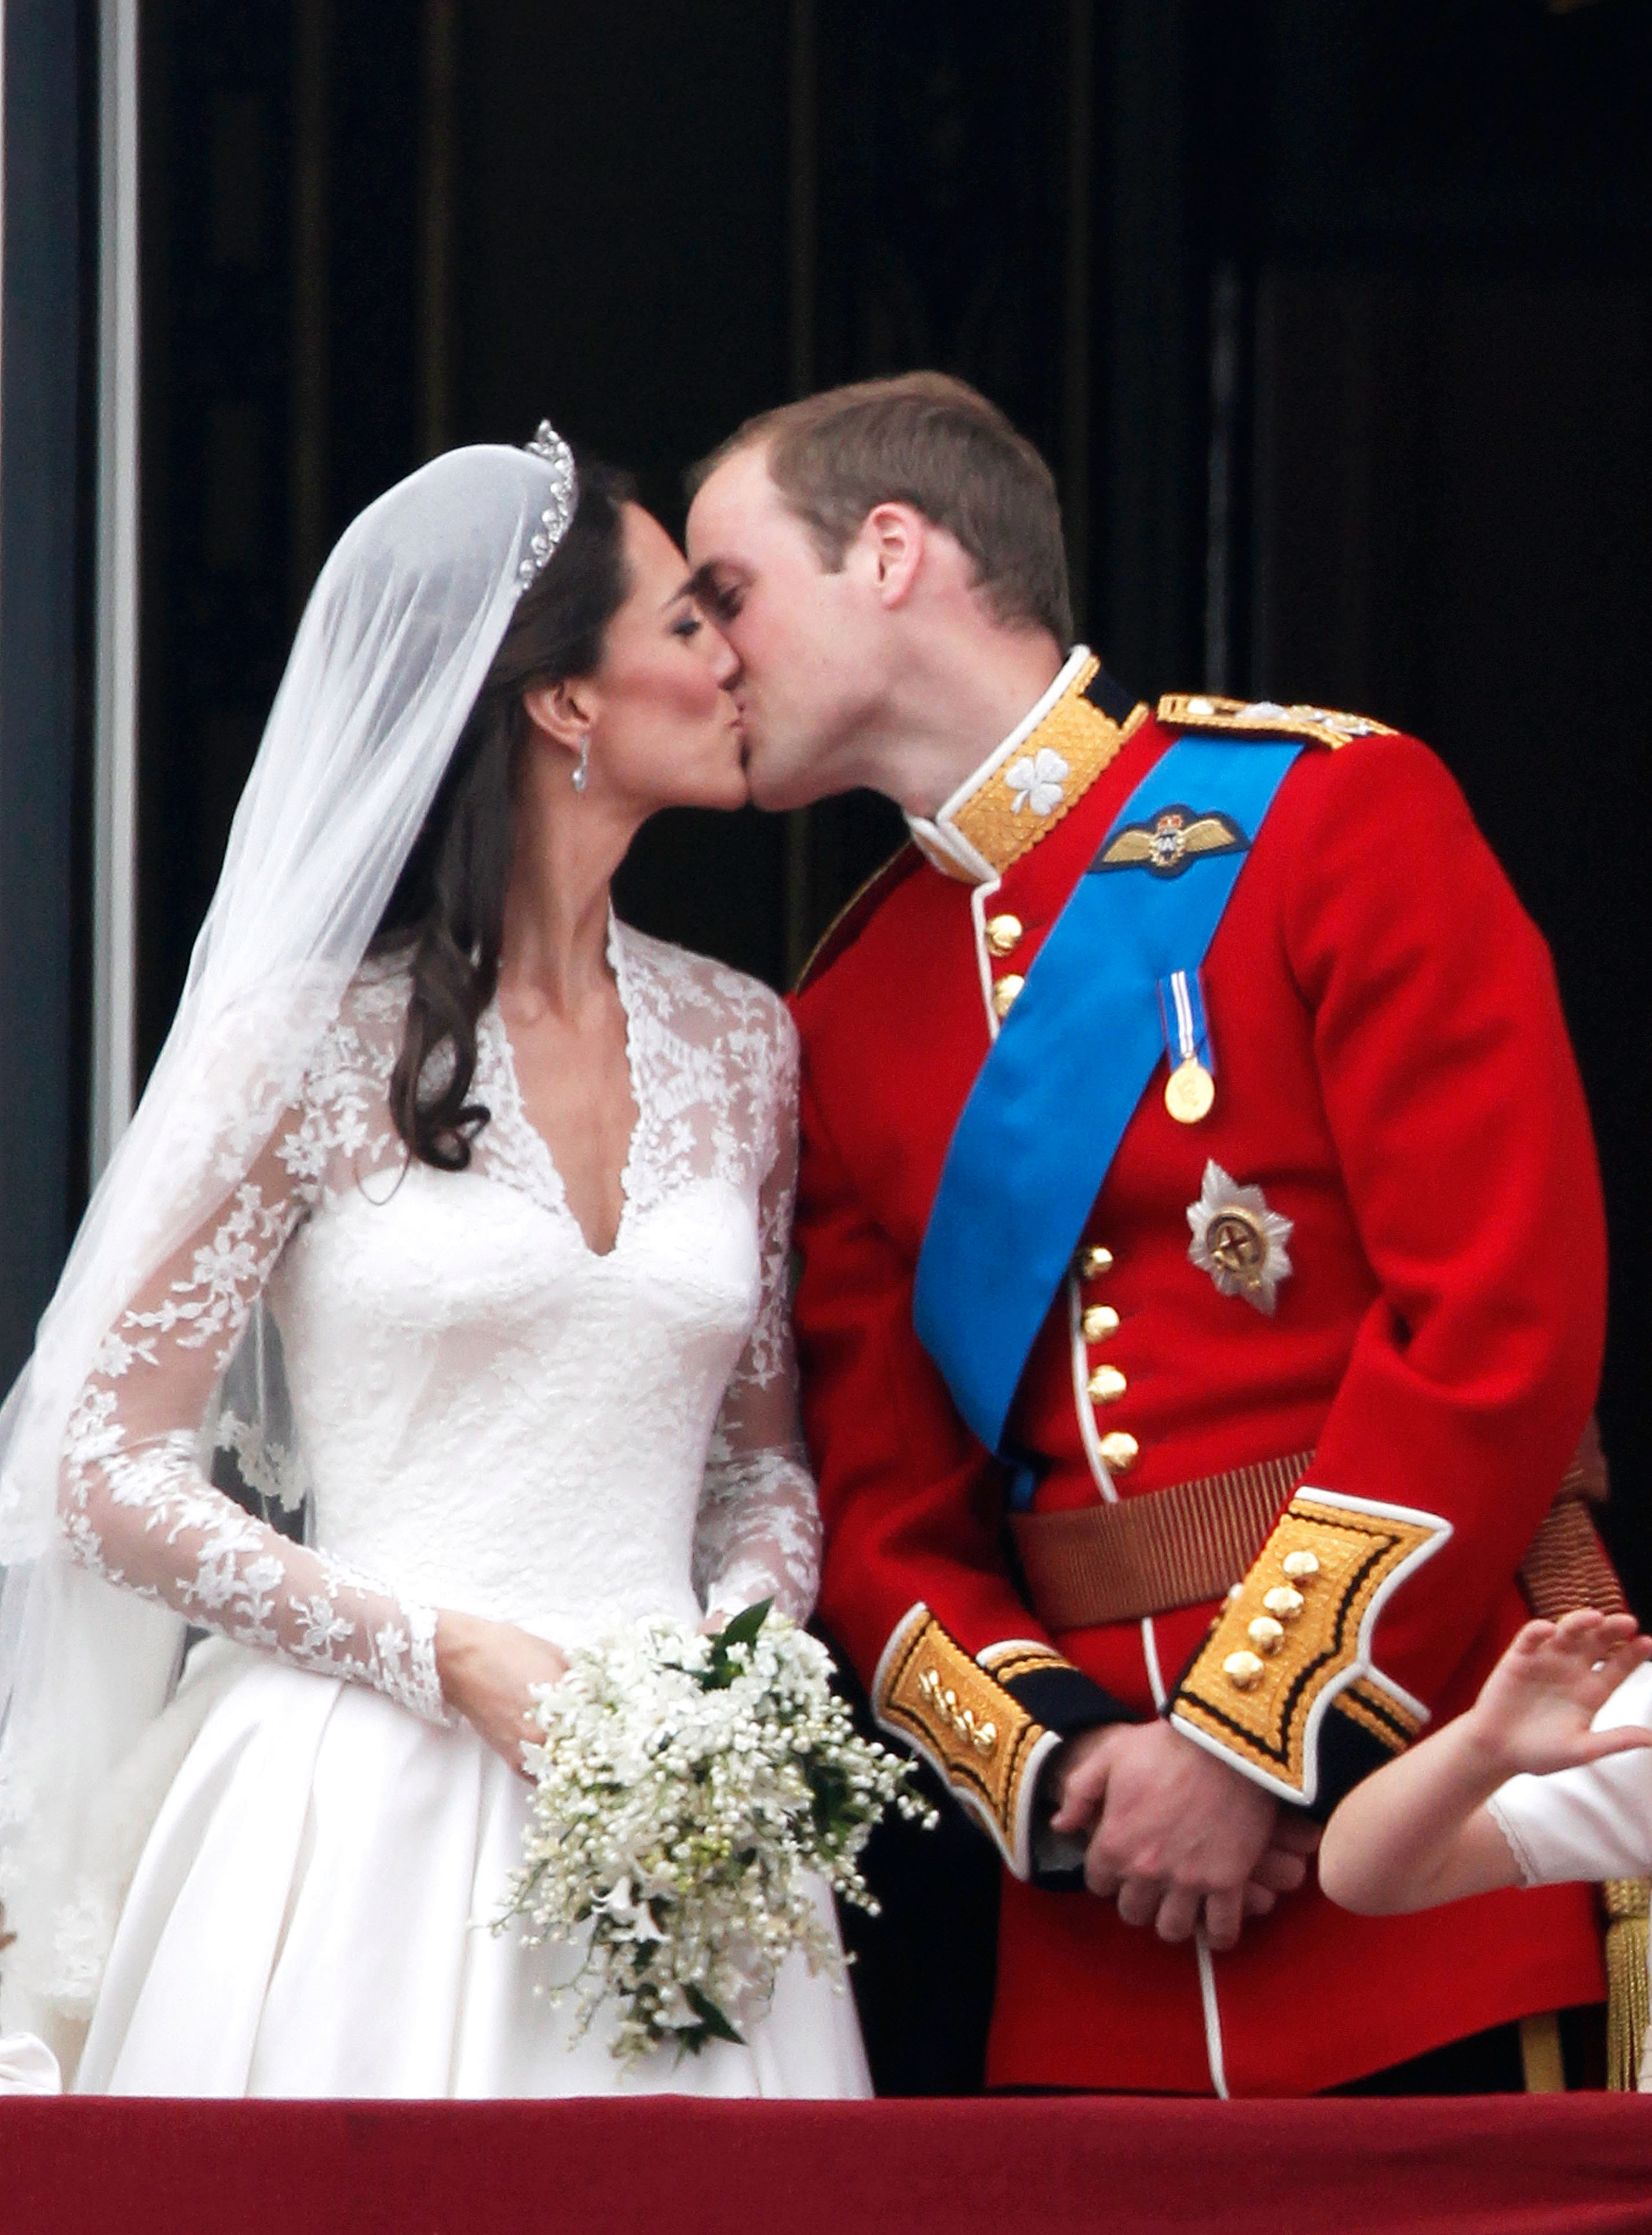 William and Kate kissing on the Buckingham Palace balcony took the young couple into the nation's hearts